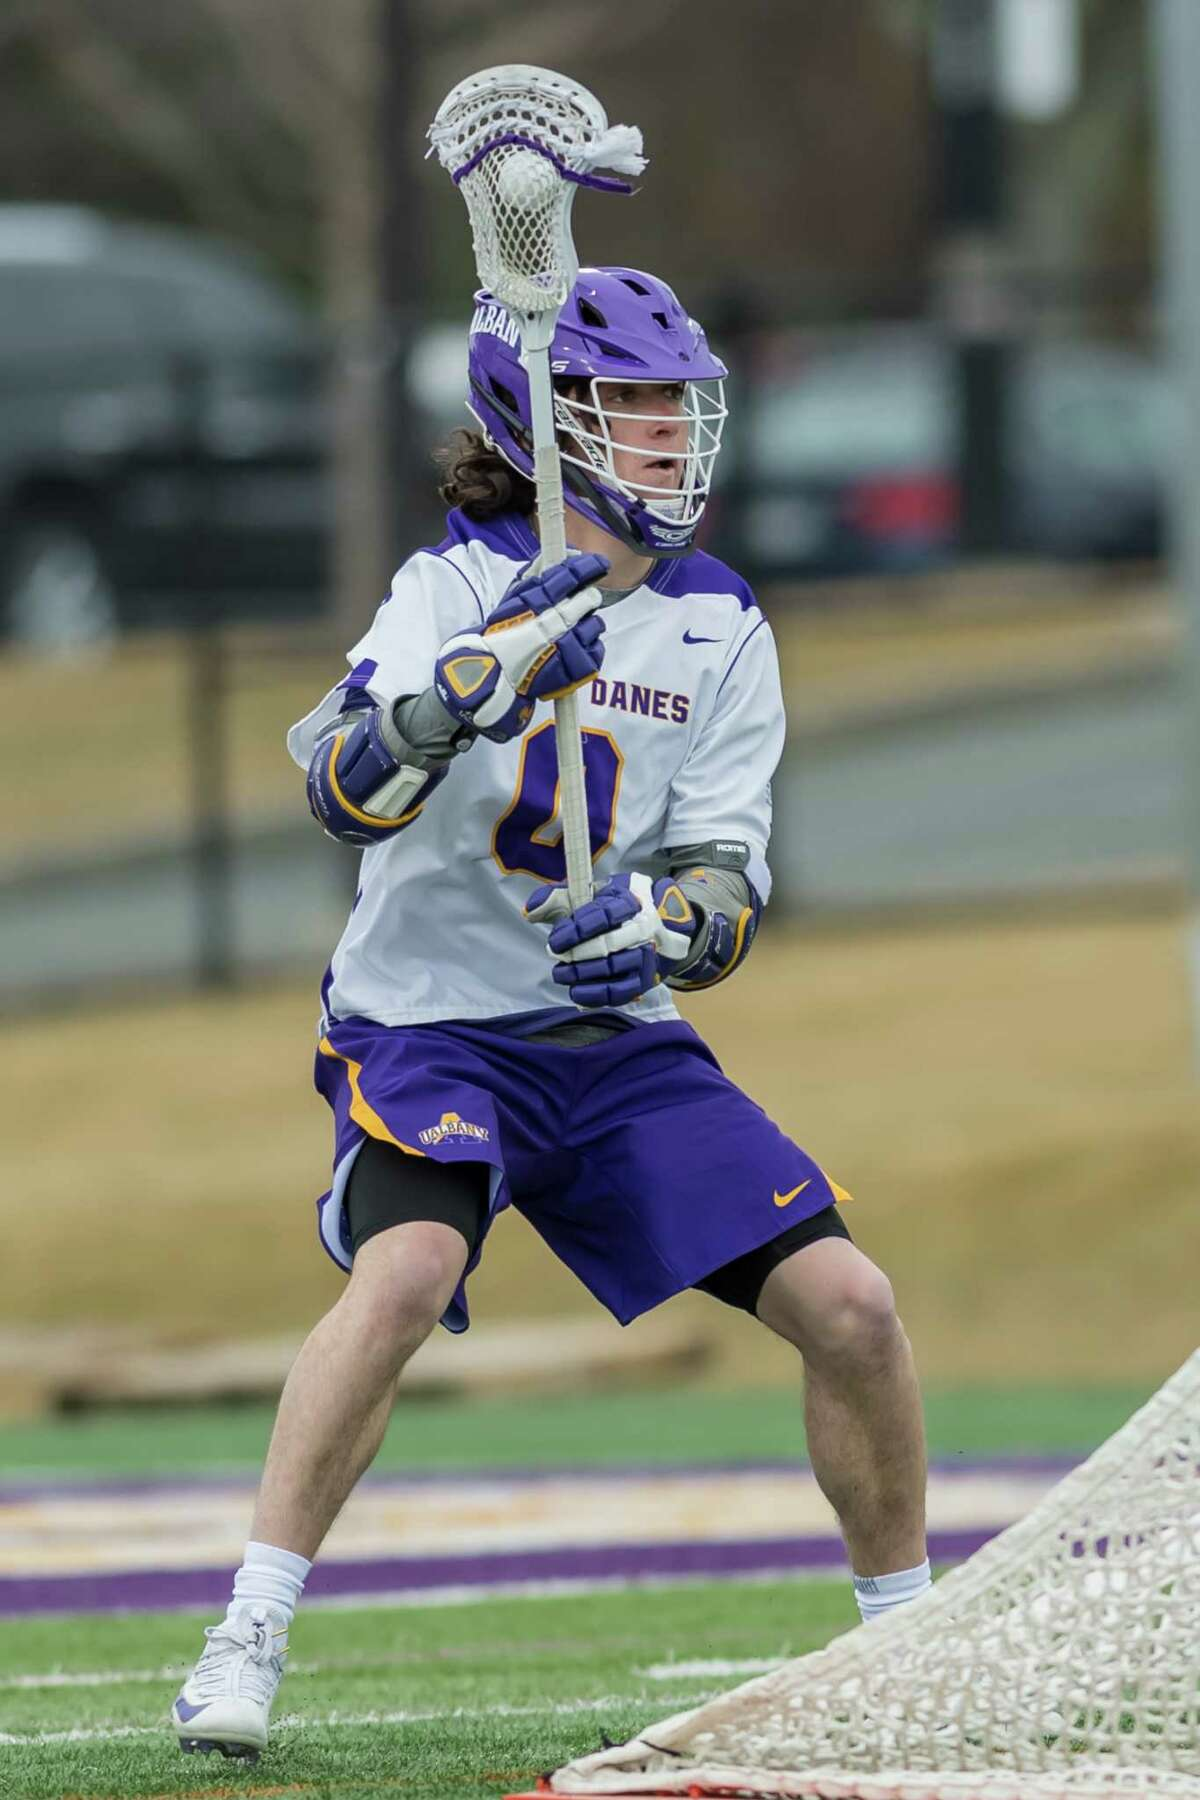 Sophomore attack Davis Diamond is likely to get his first career start against Stony Brook on Saturday. (Bill Ziskin/UAlbany athletics)